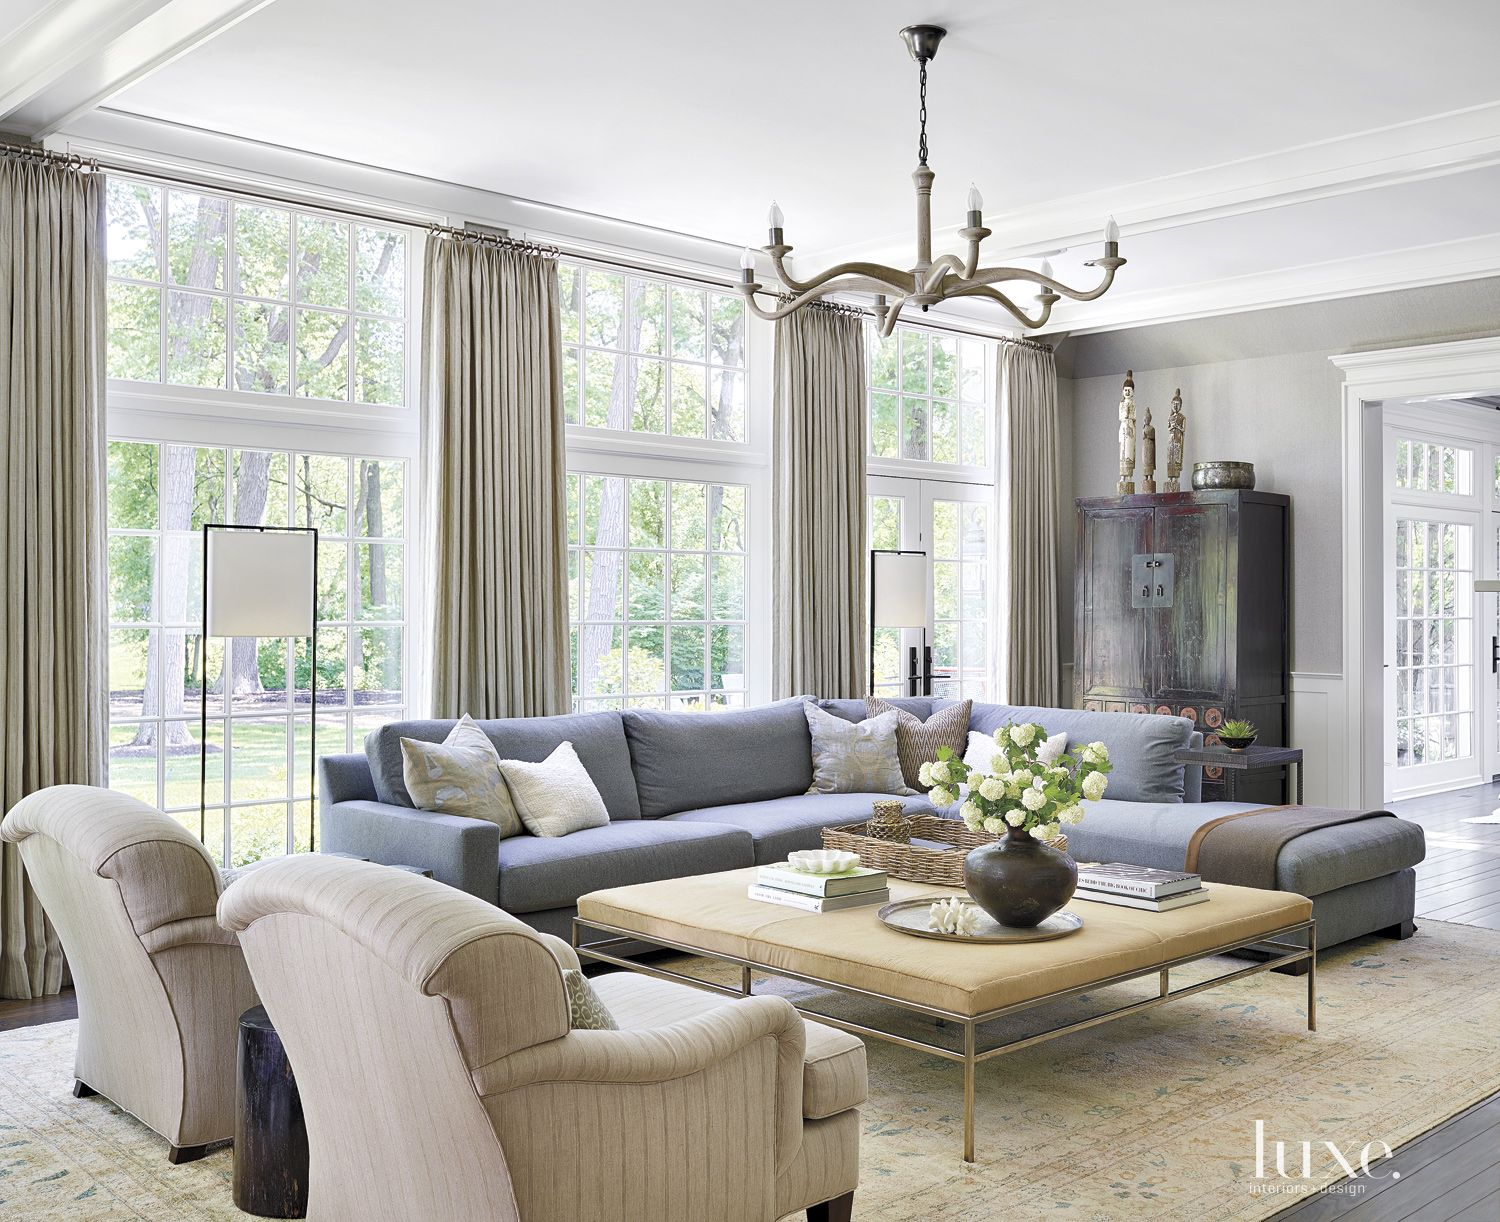 A Winnetka contemporary home uses an Oushak rug to tie in the room's many calming hues.